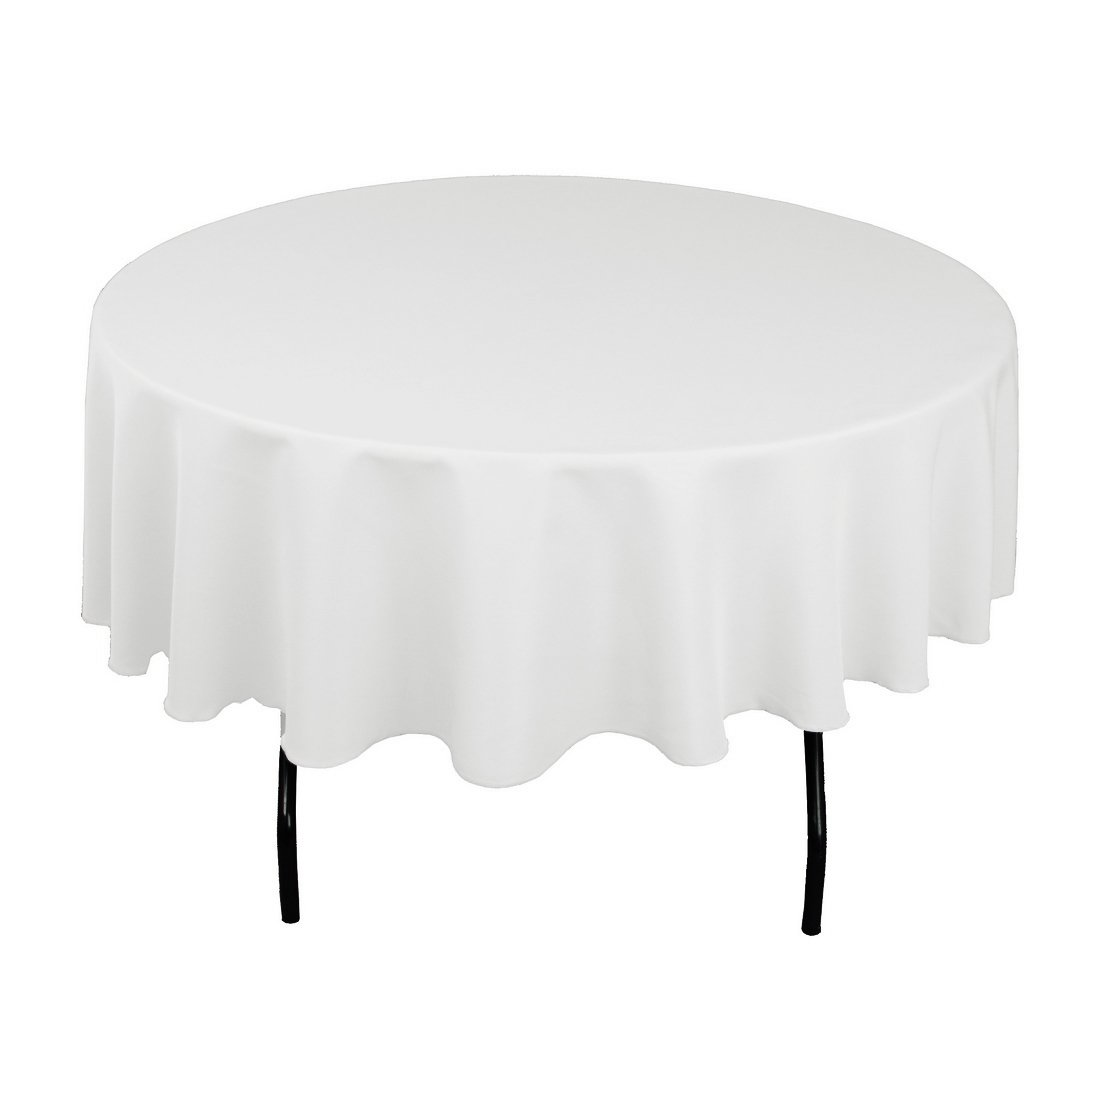 Table Cloth For Round Table Amazoncom Linentablecloth 90 Inch Round Polyester Tablecloth